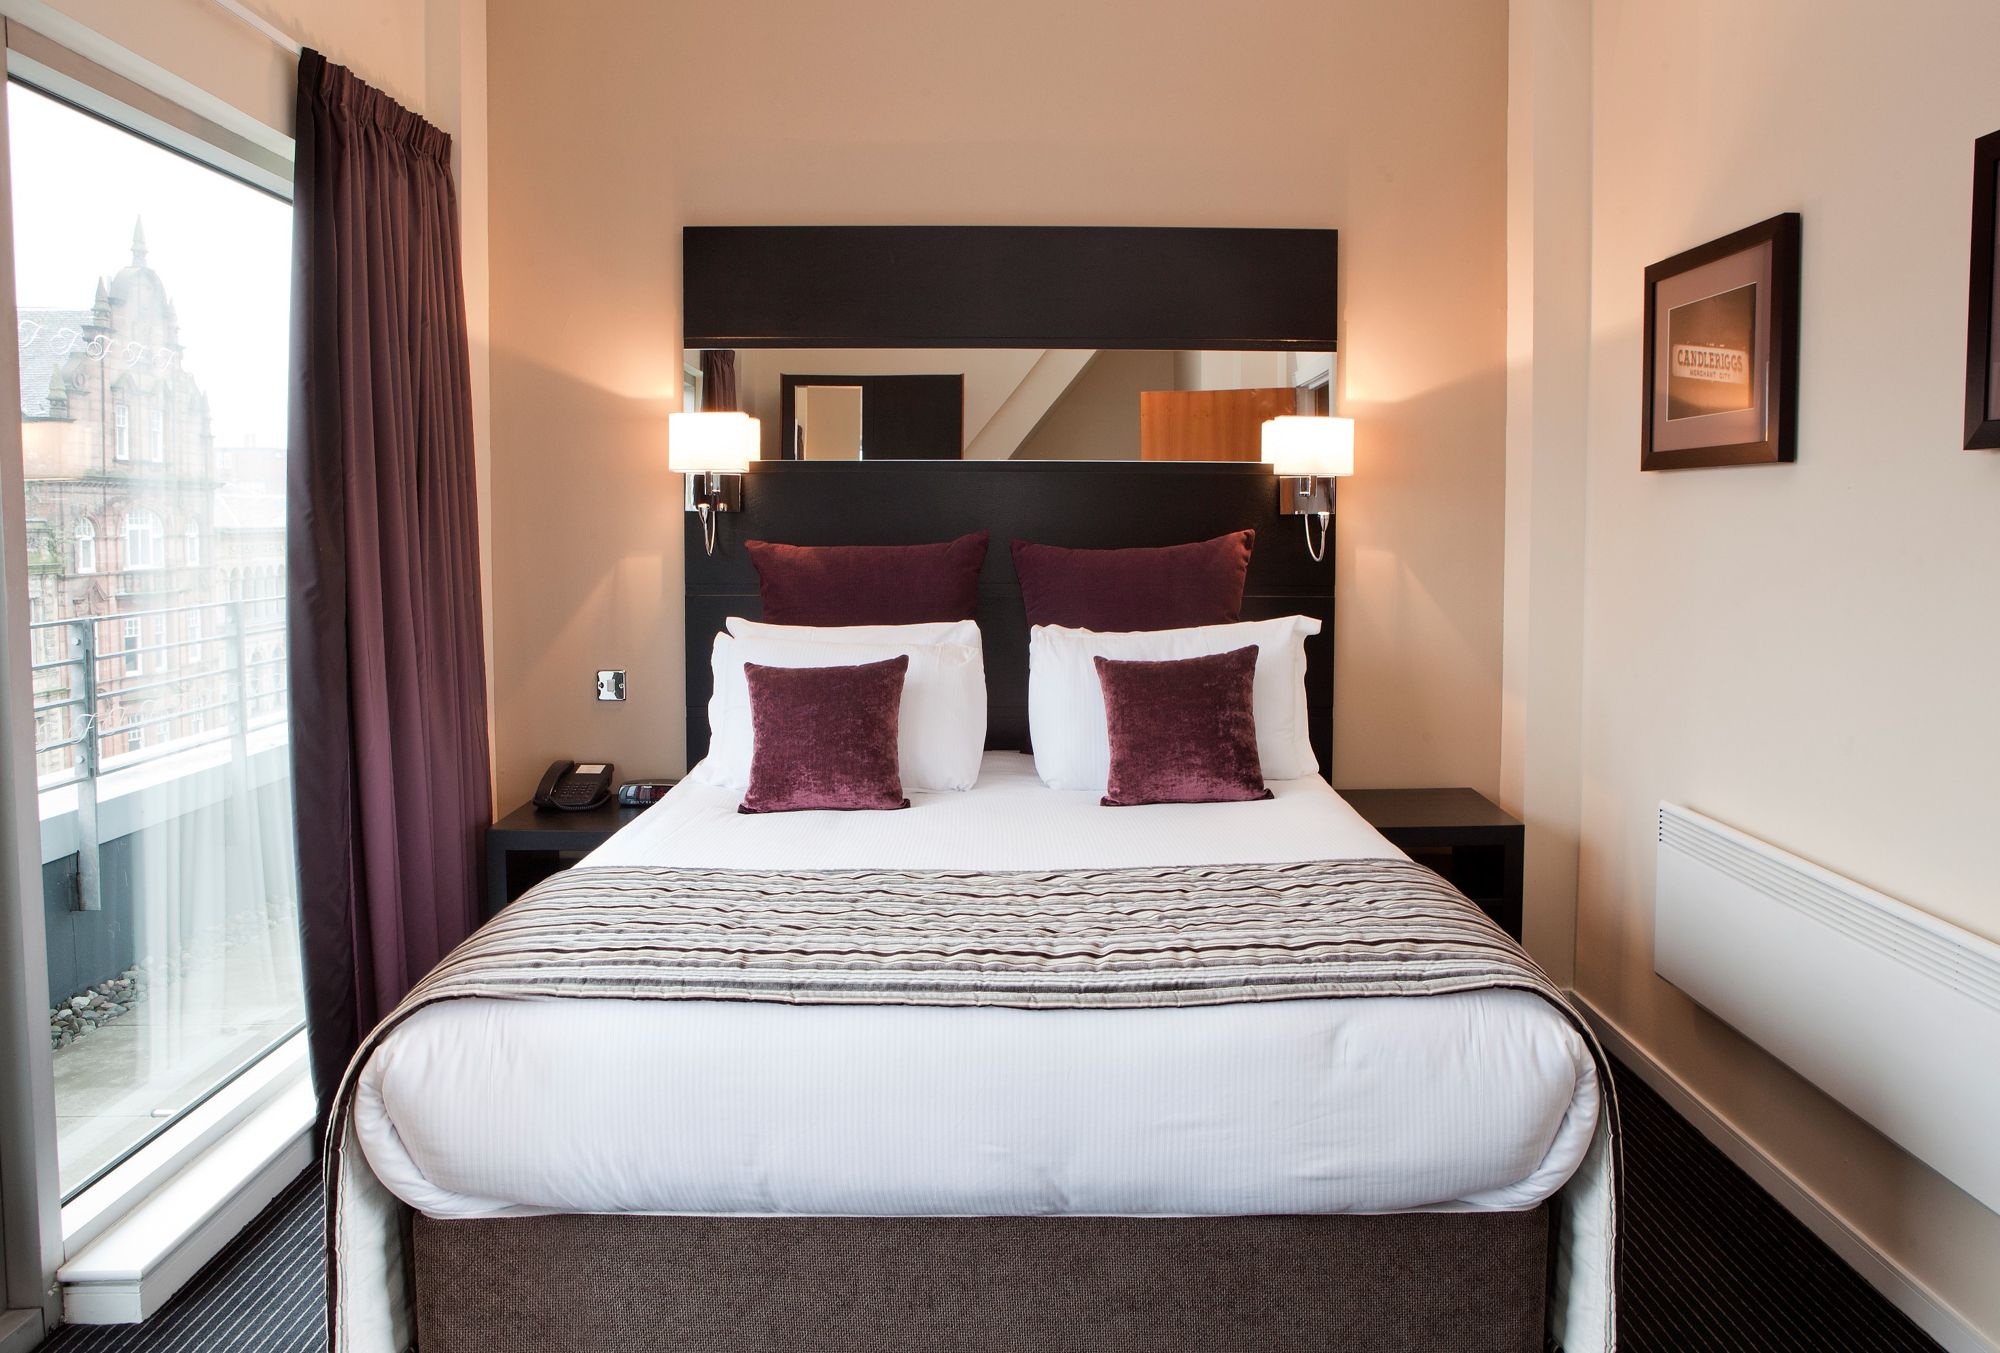 Self-Catering in Lanarkshire holidays at Cool Places